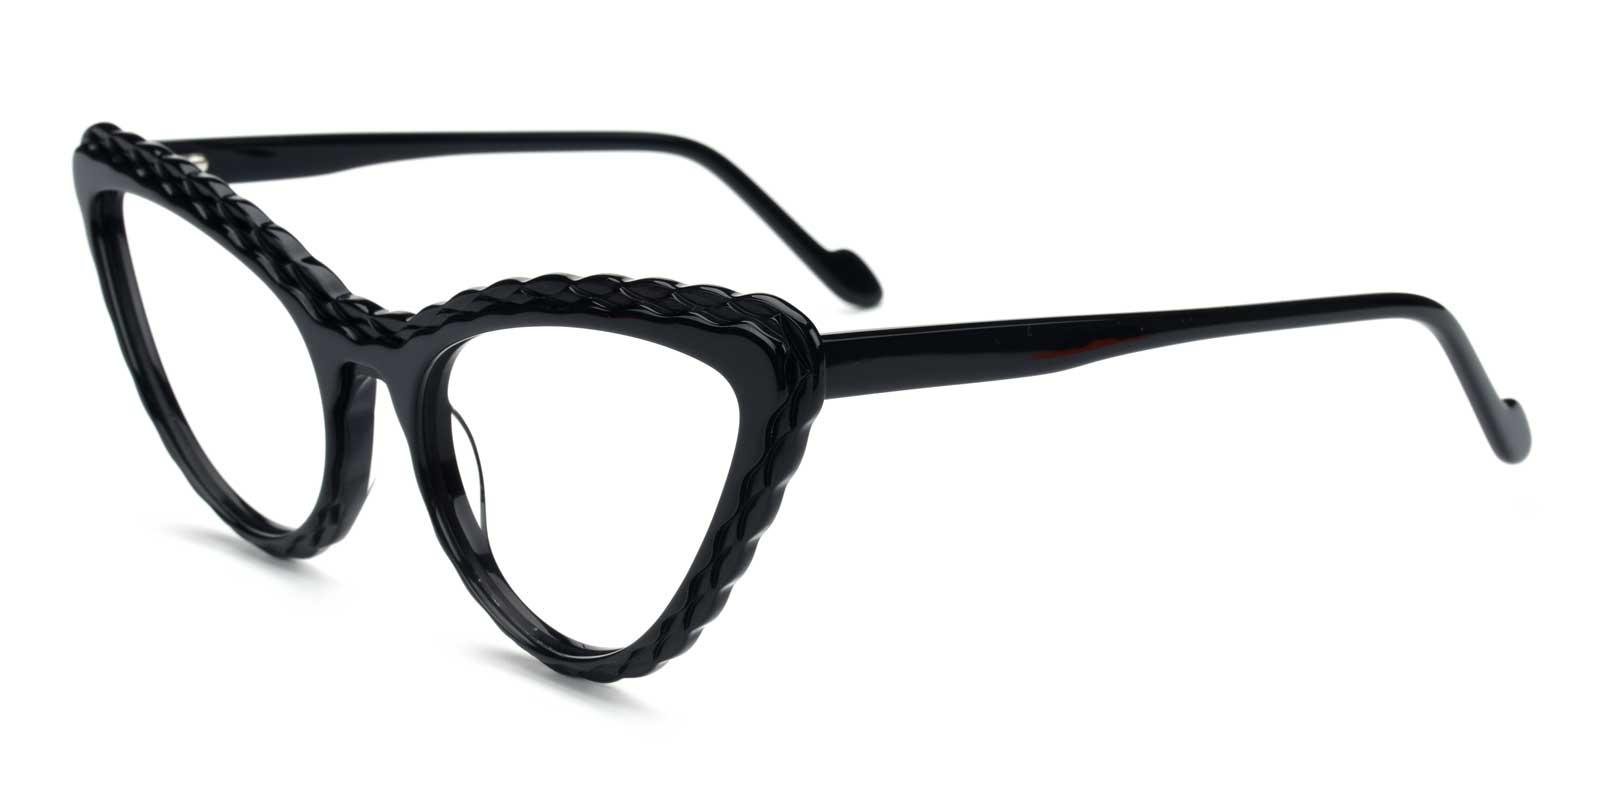 Barry-Black-Cat-Acetate-Eyeglasses-additional1